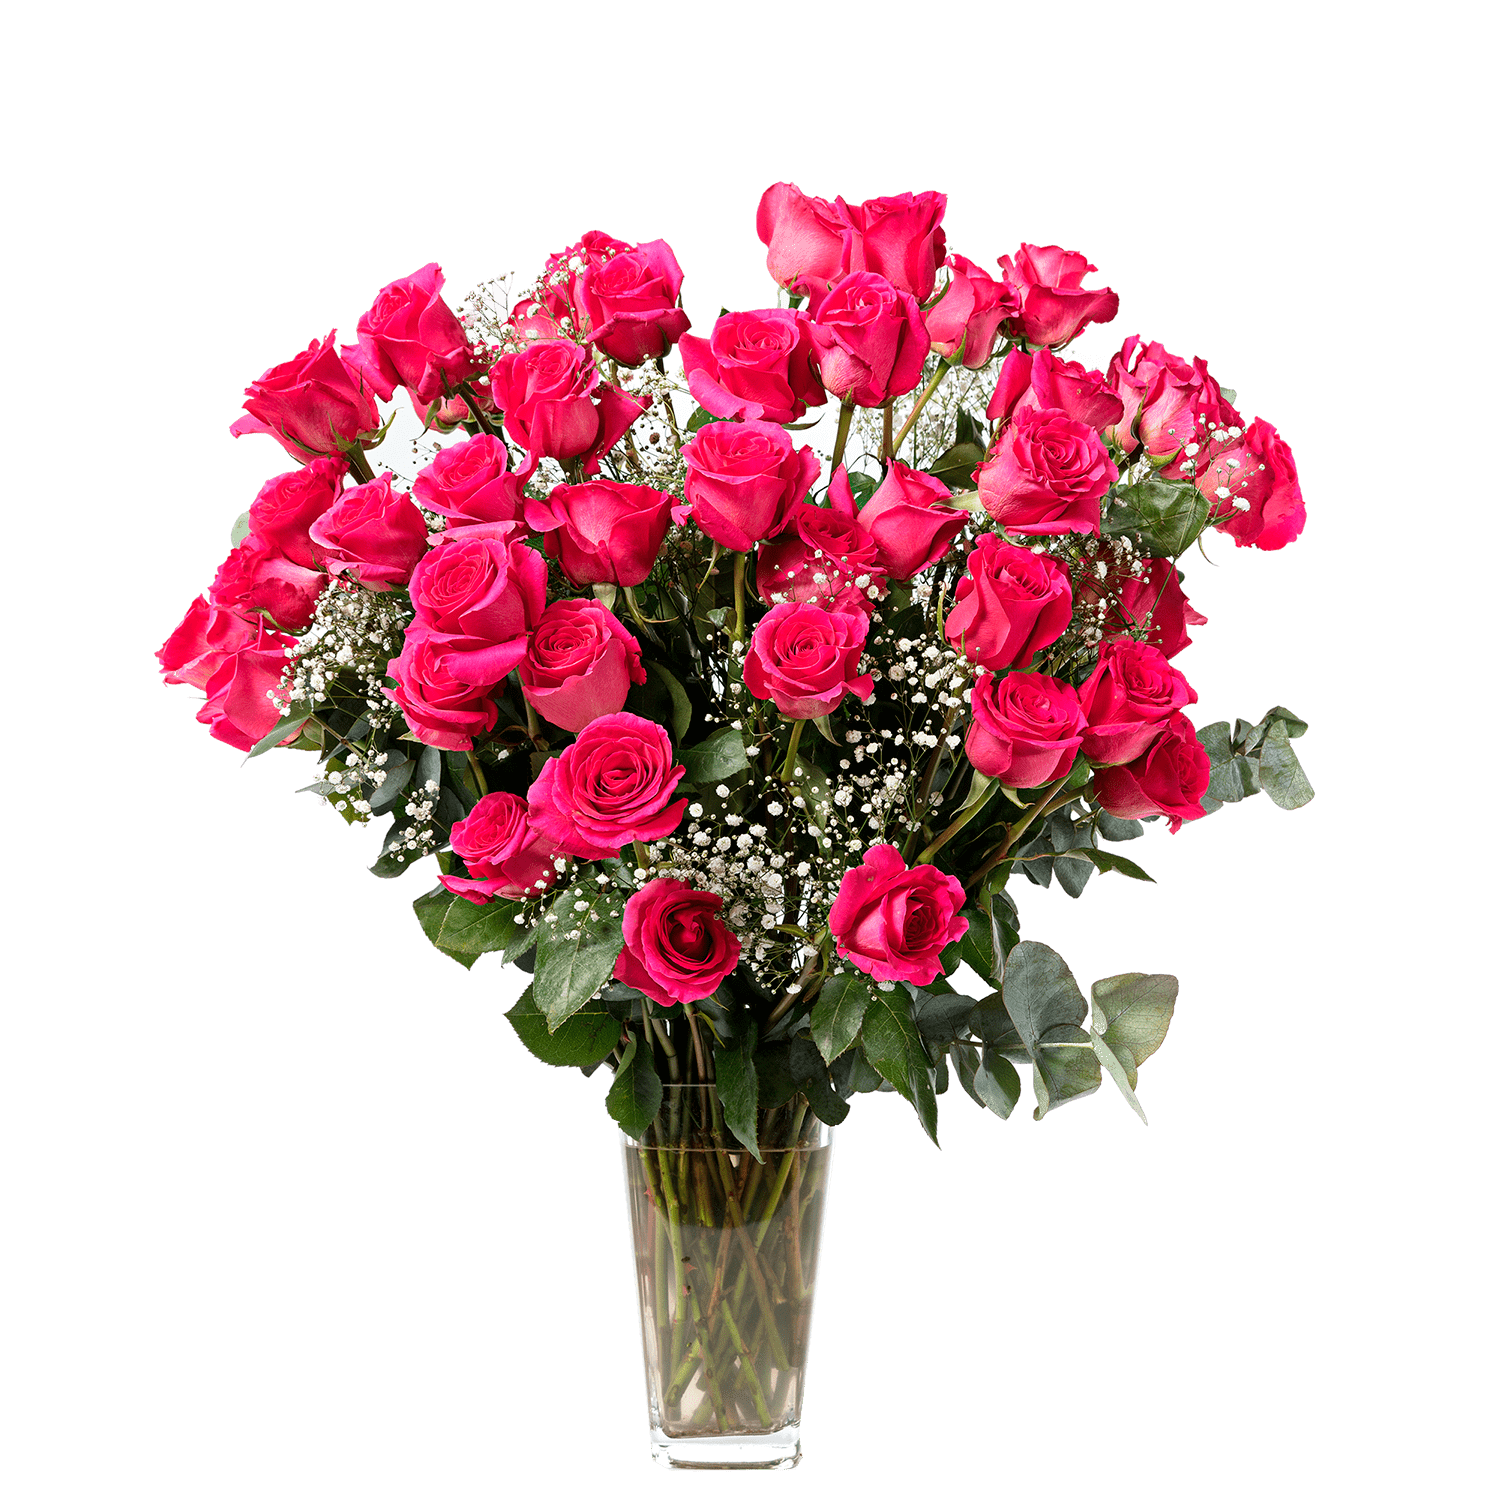 We all know that person who loves all pink everything – treat them to our stunning hot pink bouquet and you'll give them the biggest smile.